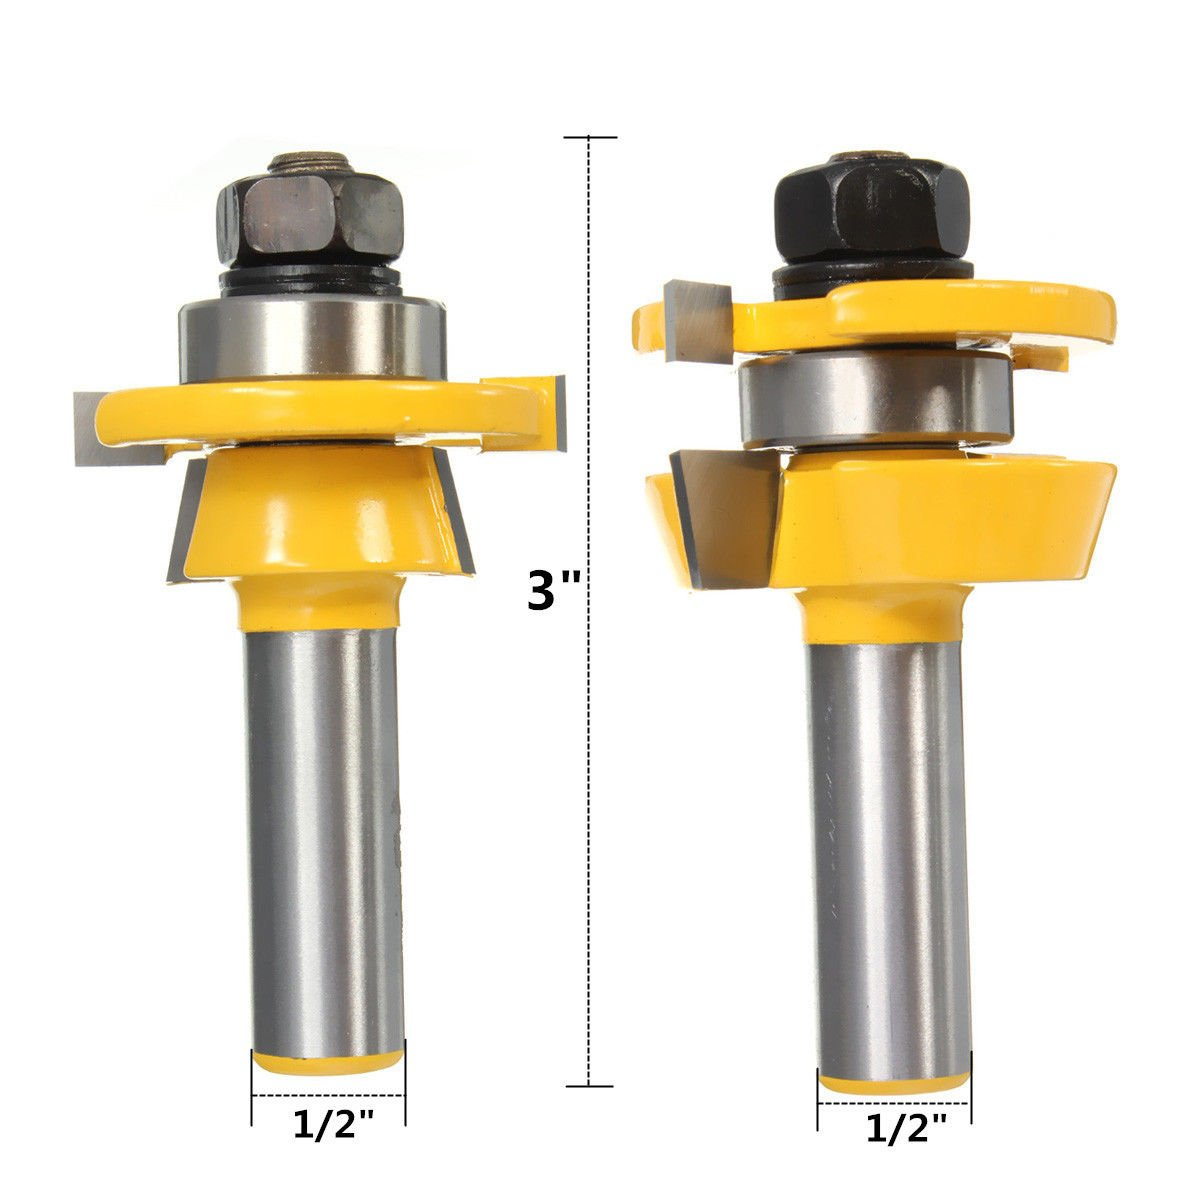 Agile-Shop 2pcs Rail & Stile Router Bit Set with 1/2 inch Shank Shaker for Woodworking